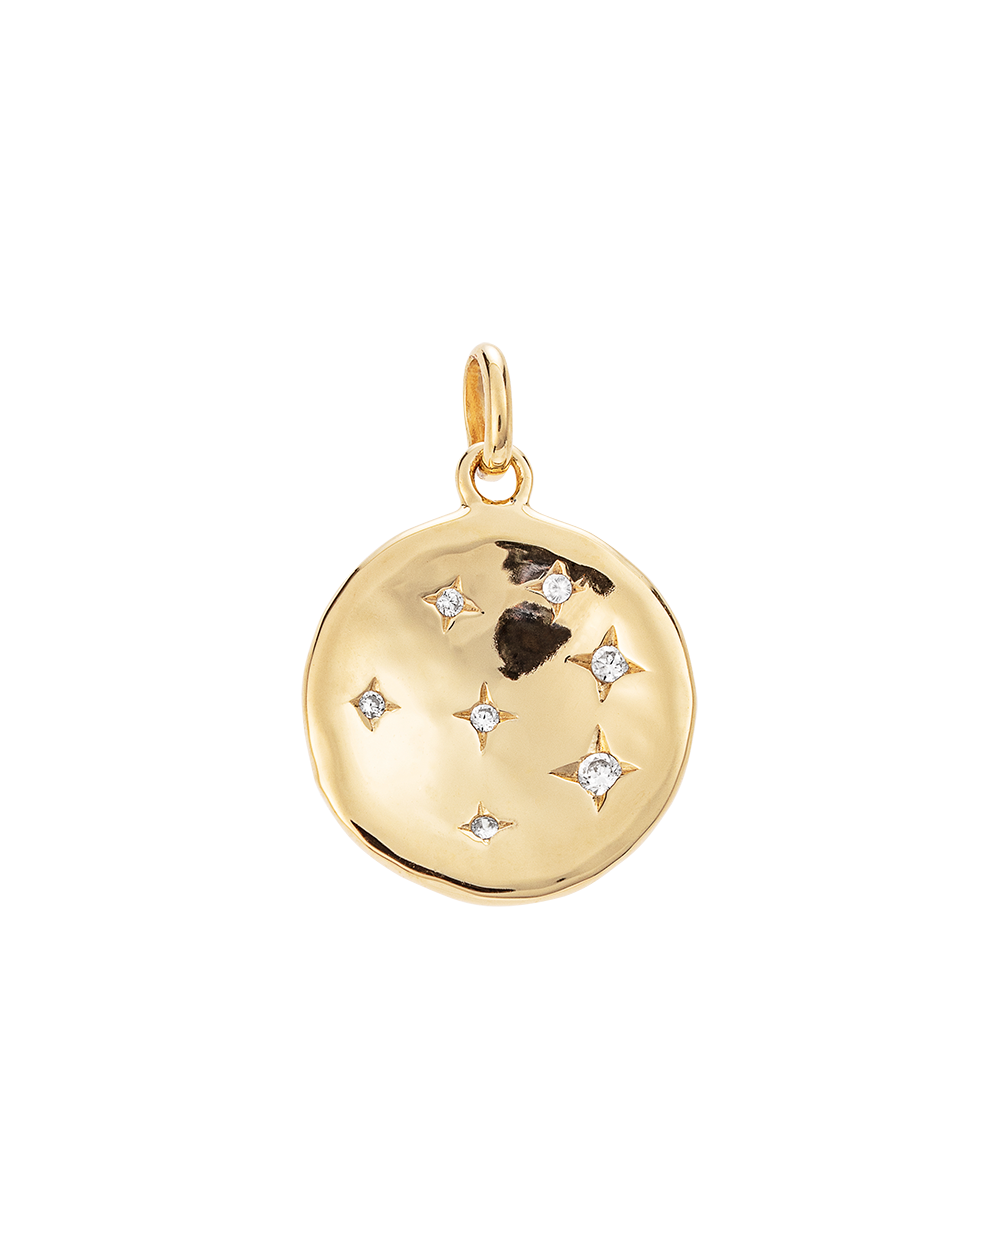 CONSTELLATION COIN (18K-GOLD-VERMEIL)